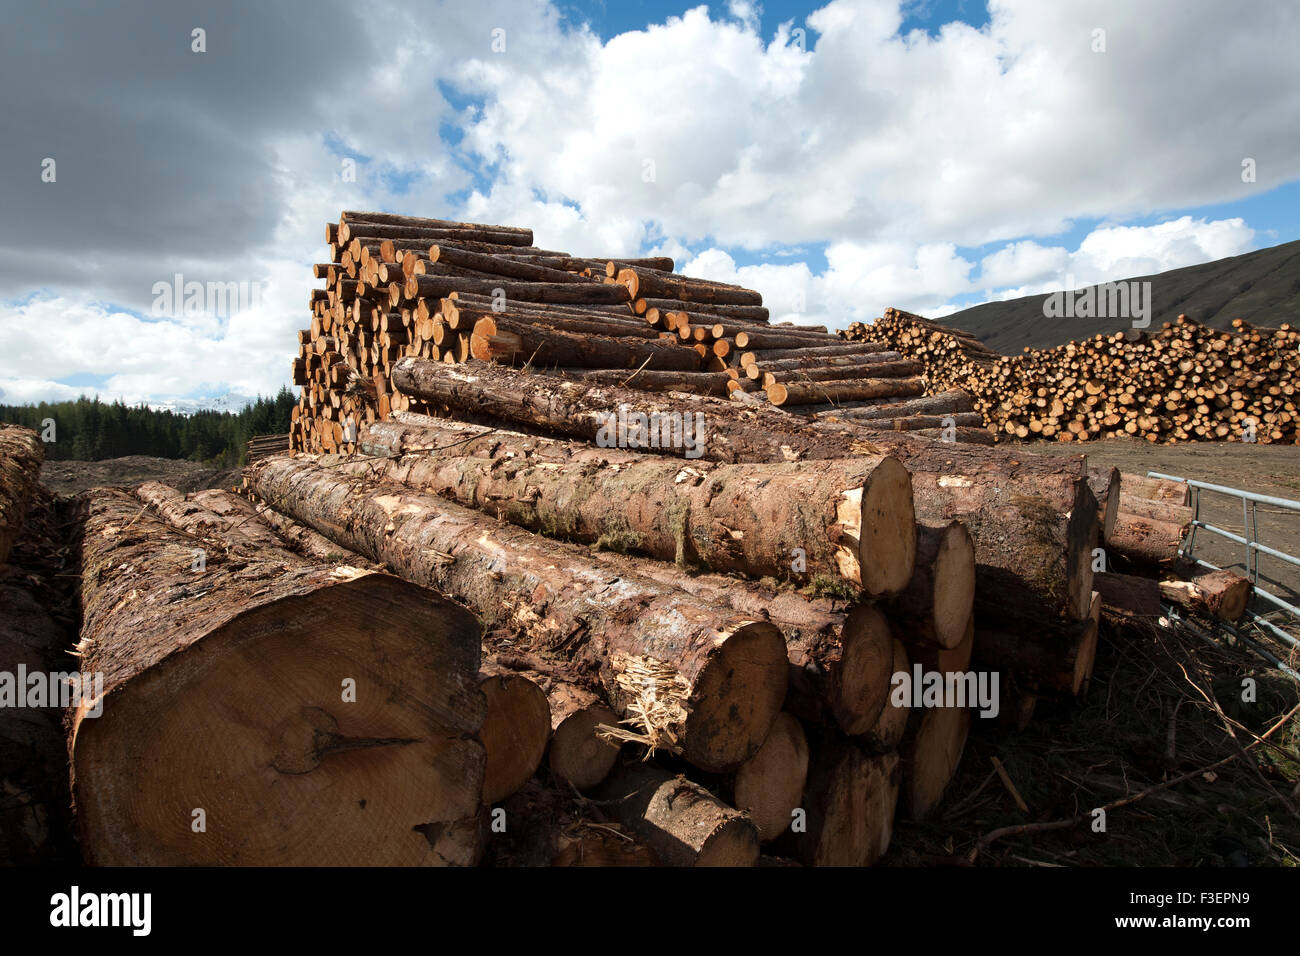 Logging at Breadalbane, Scotland, UK. - Stock Image